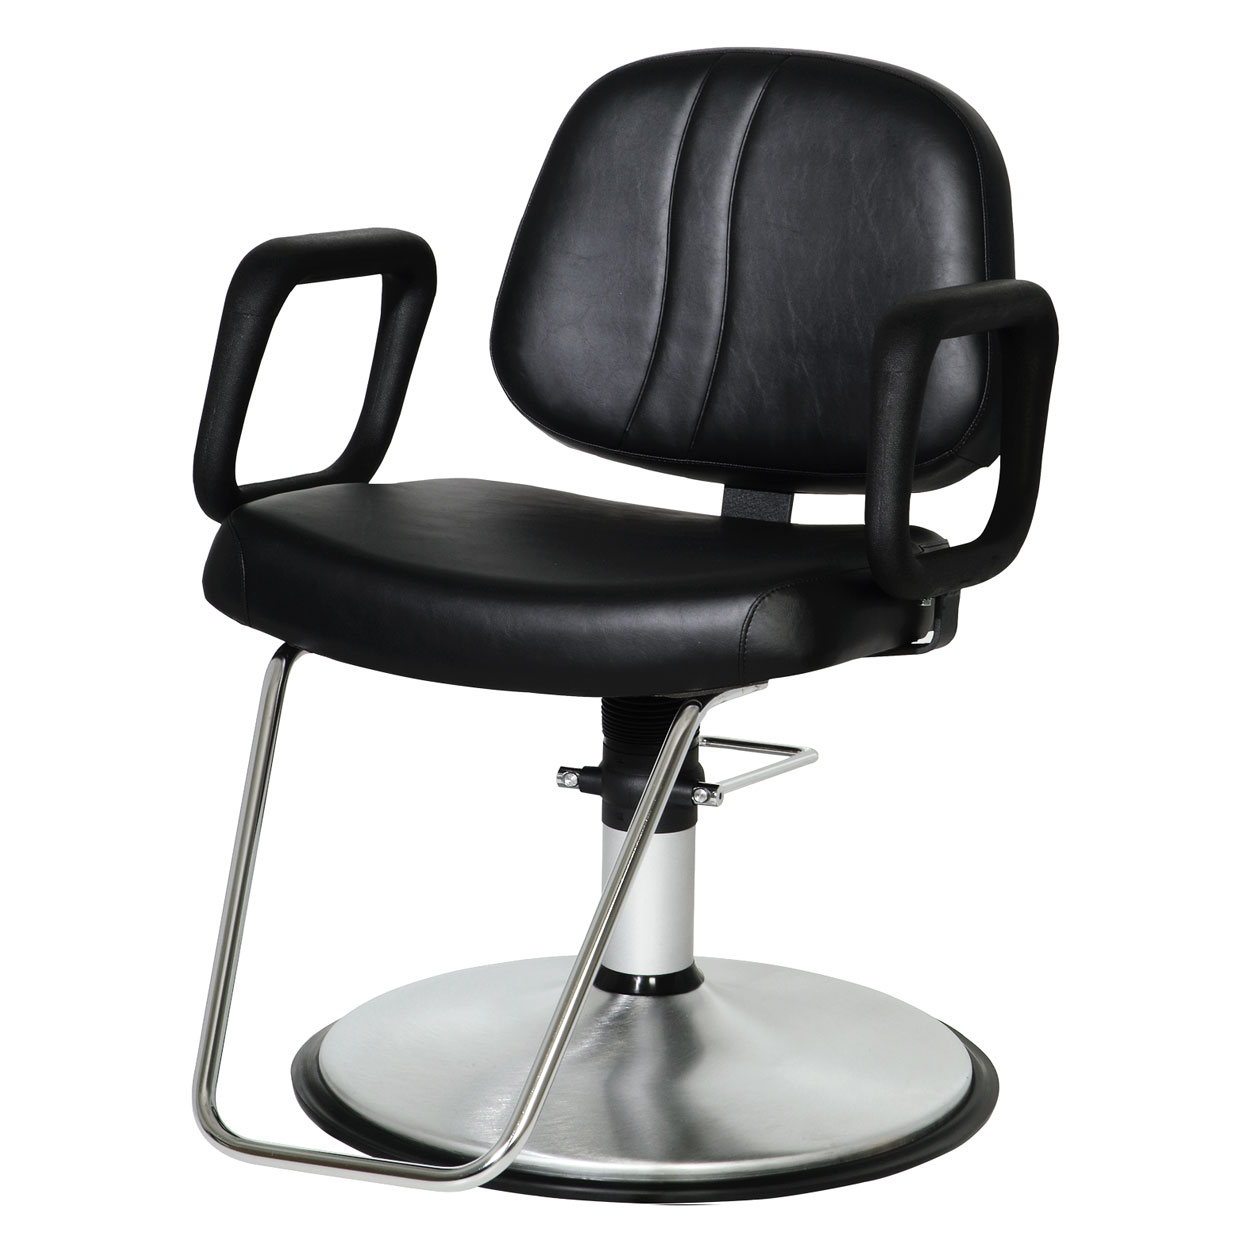 Belvedere Lexus Salon Chair image size reference